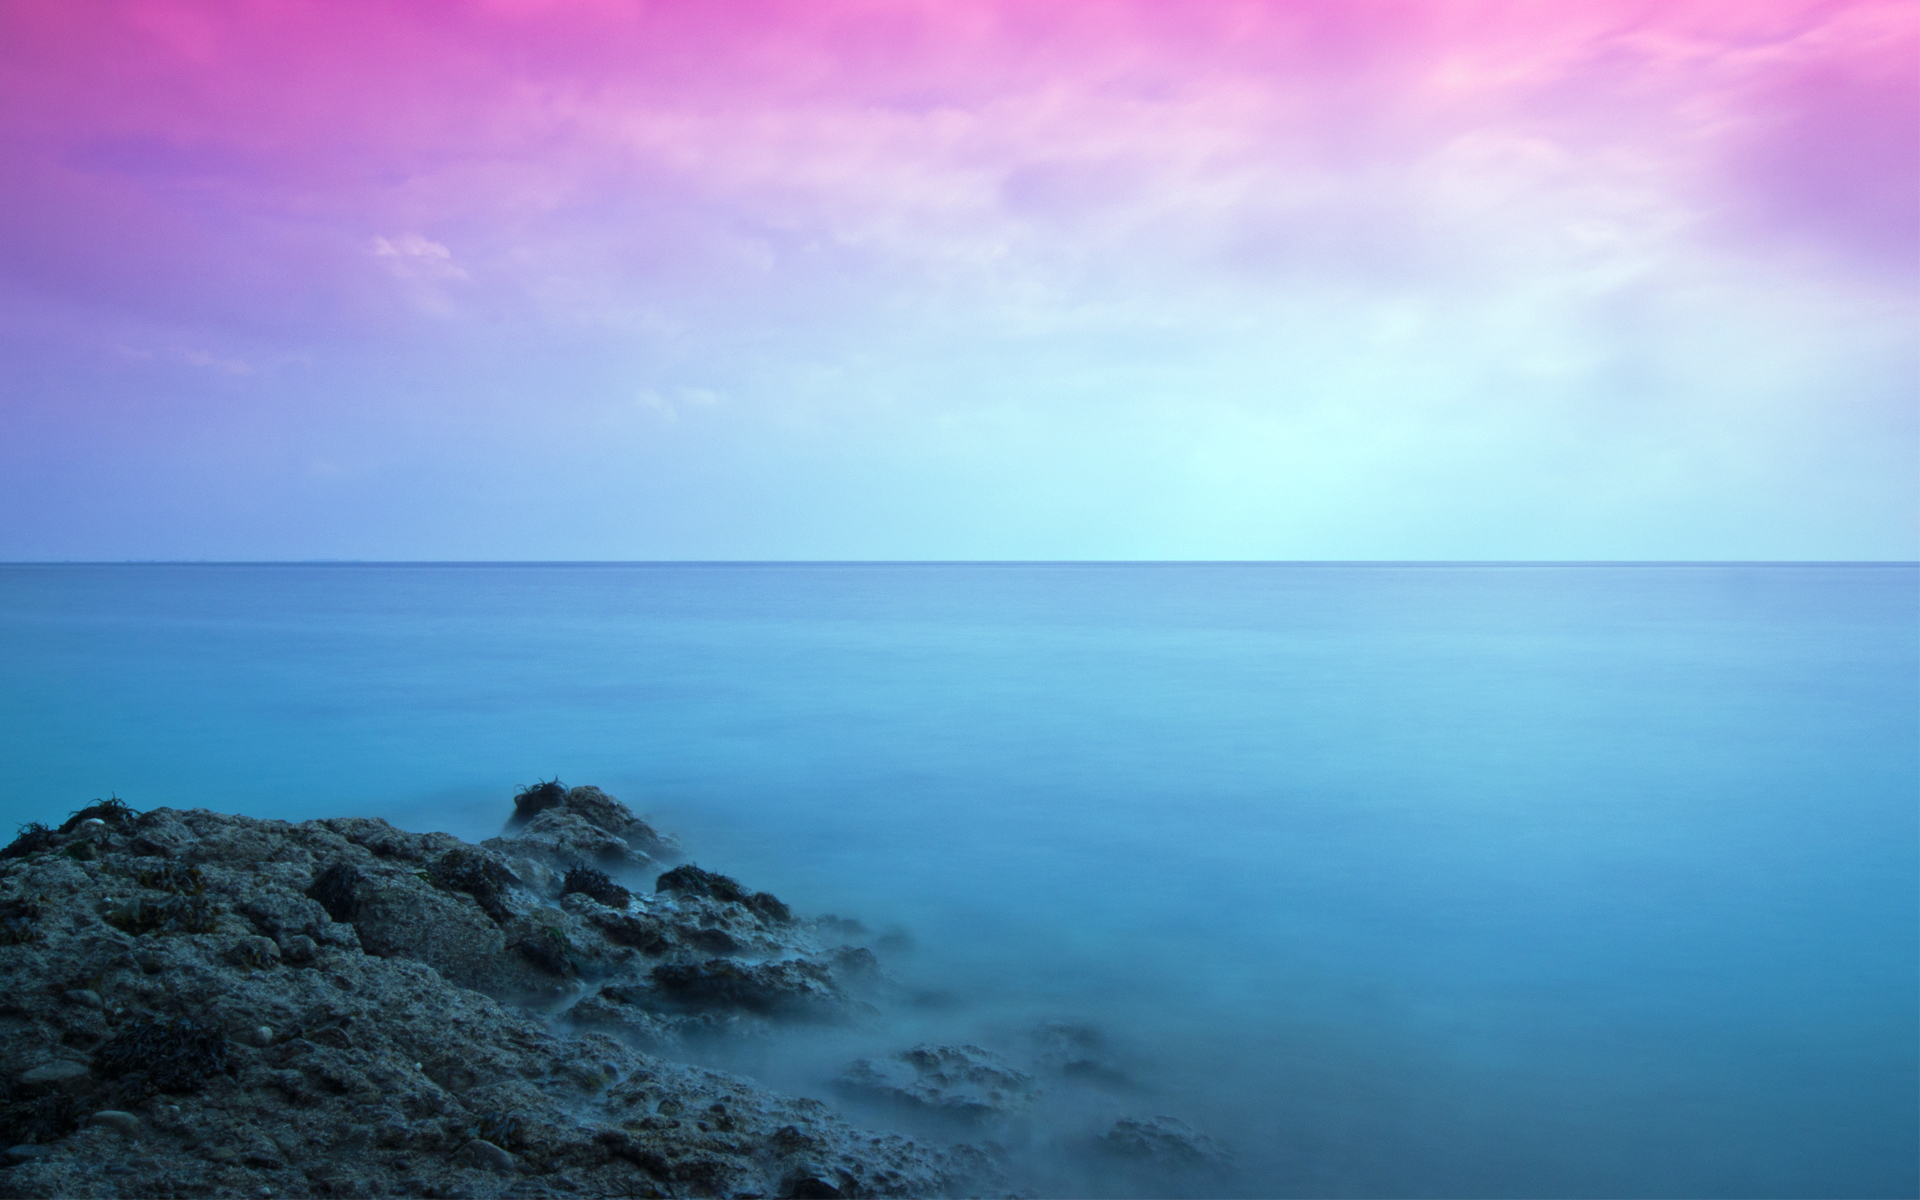 Colorful Seascape 1111.39 Kb